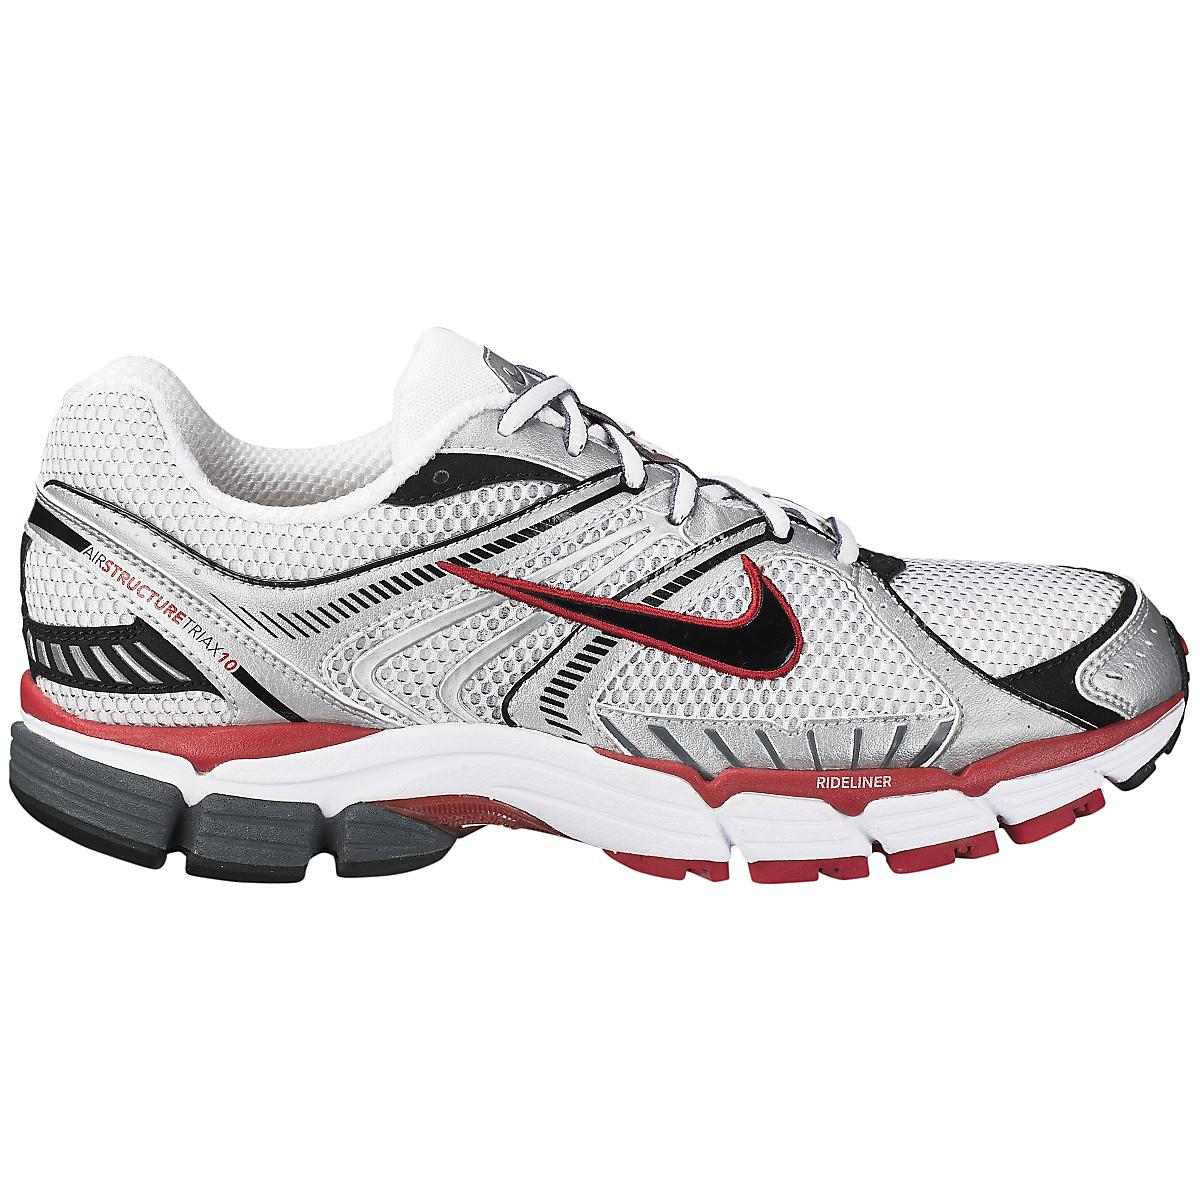 df0d76a73485 Mens Nike Air Structure Triax 10+ Running Shoe at Road Runner Sports